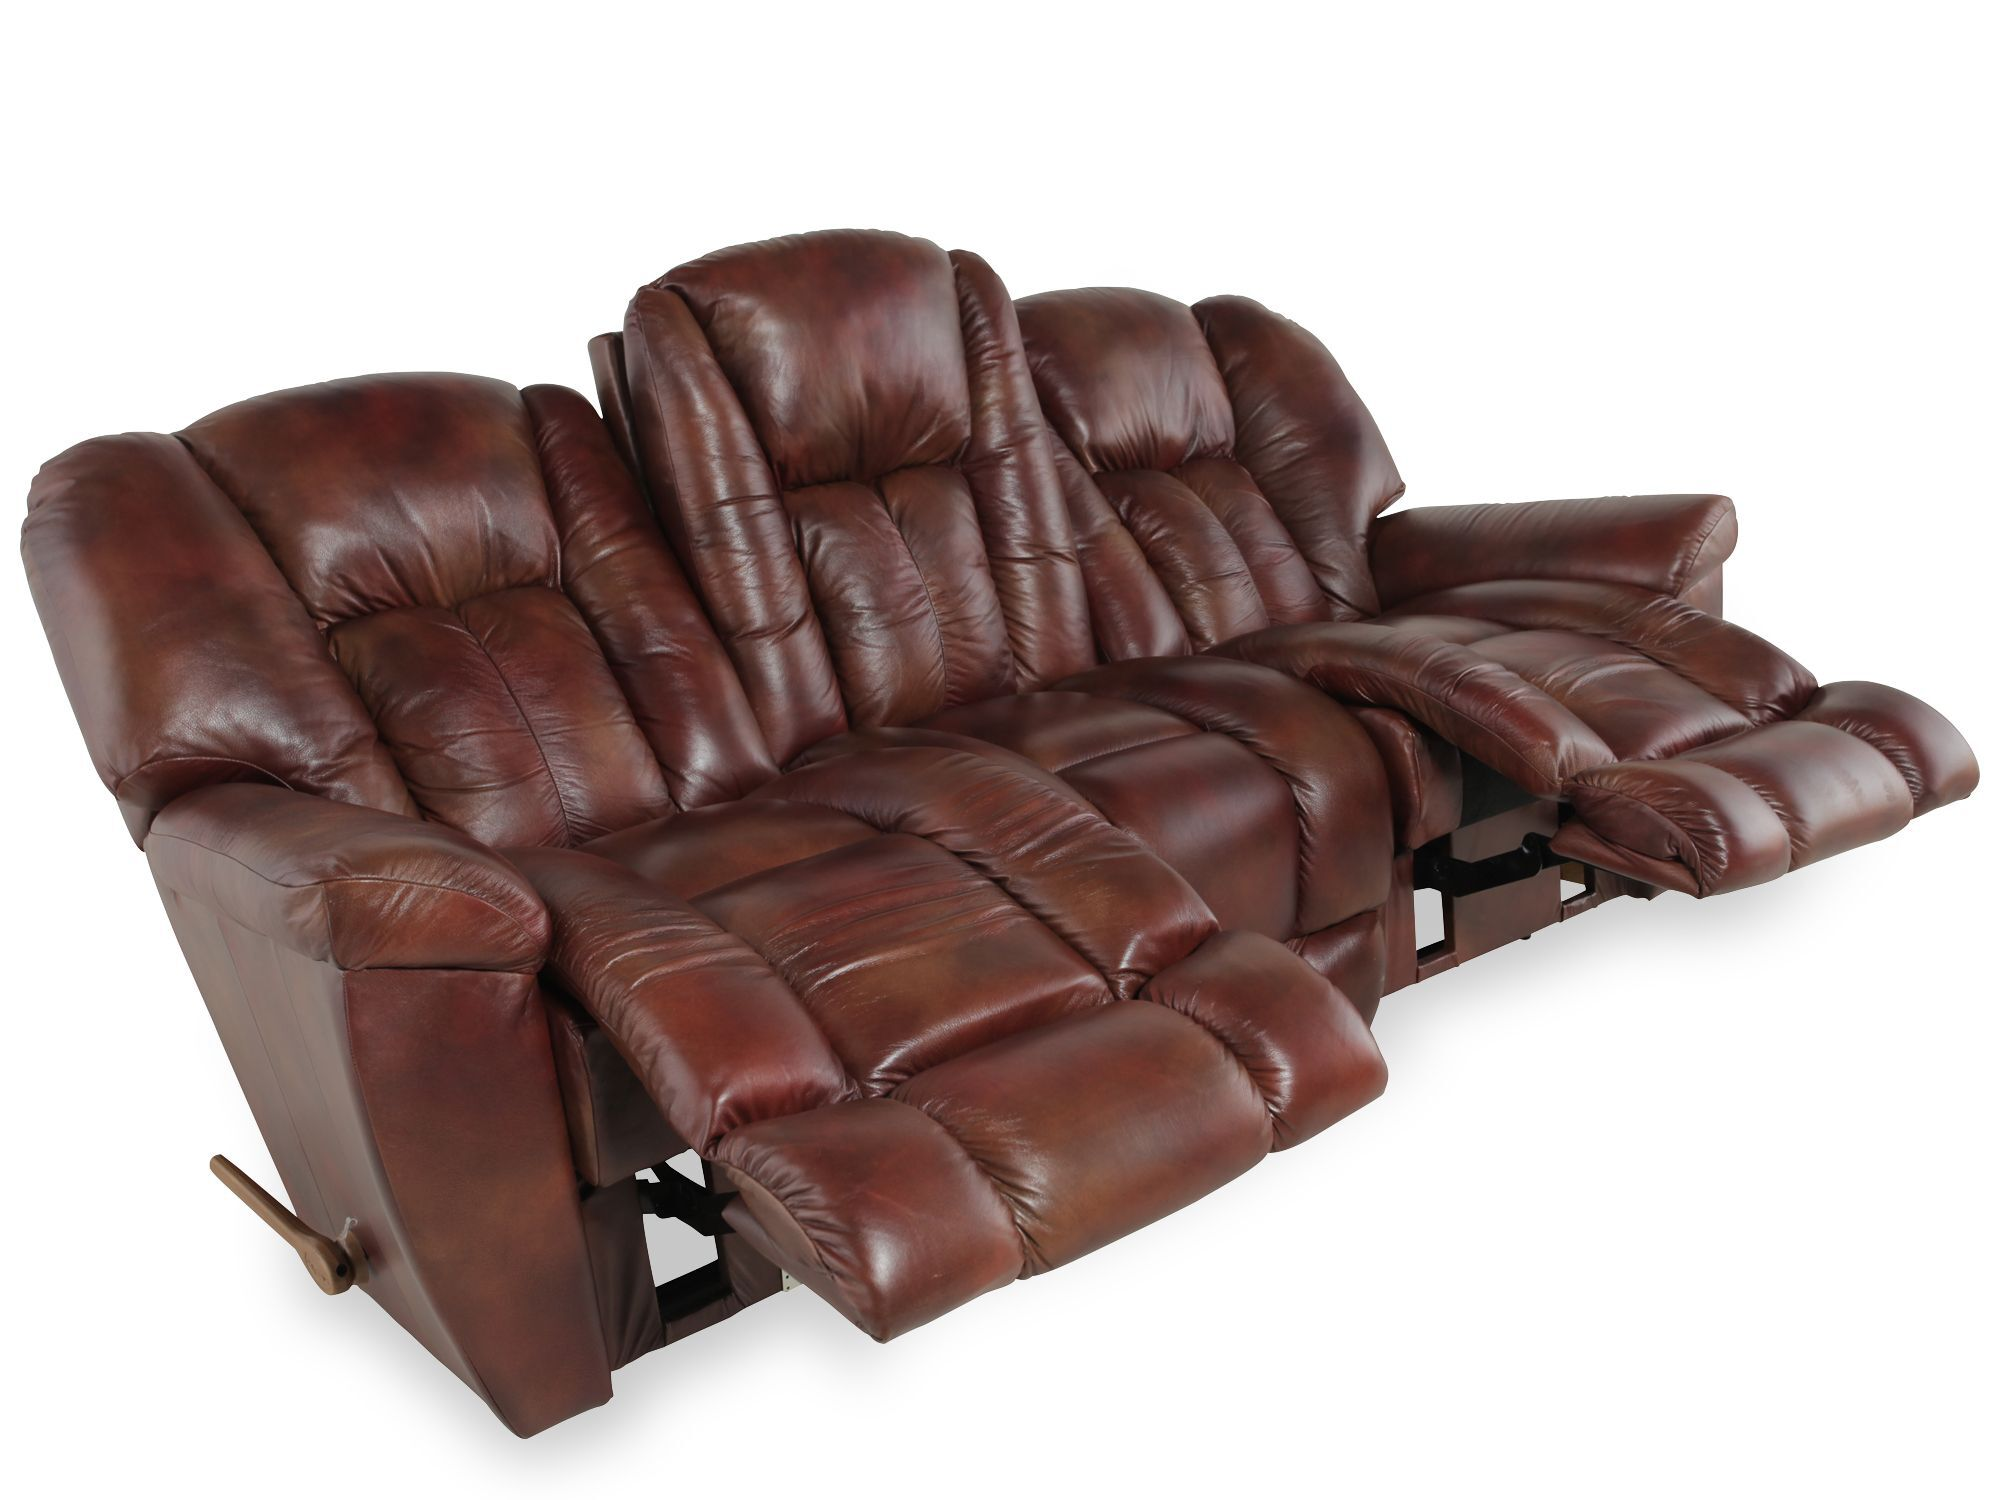 lazy boy maverick recliner sofa sectional leather brown la z mahogany